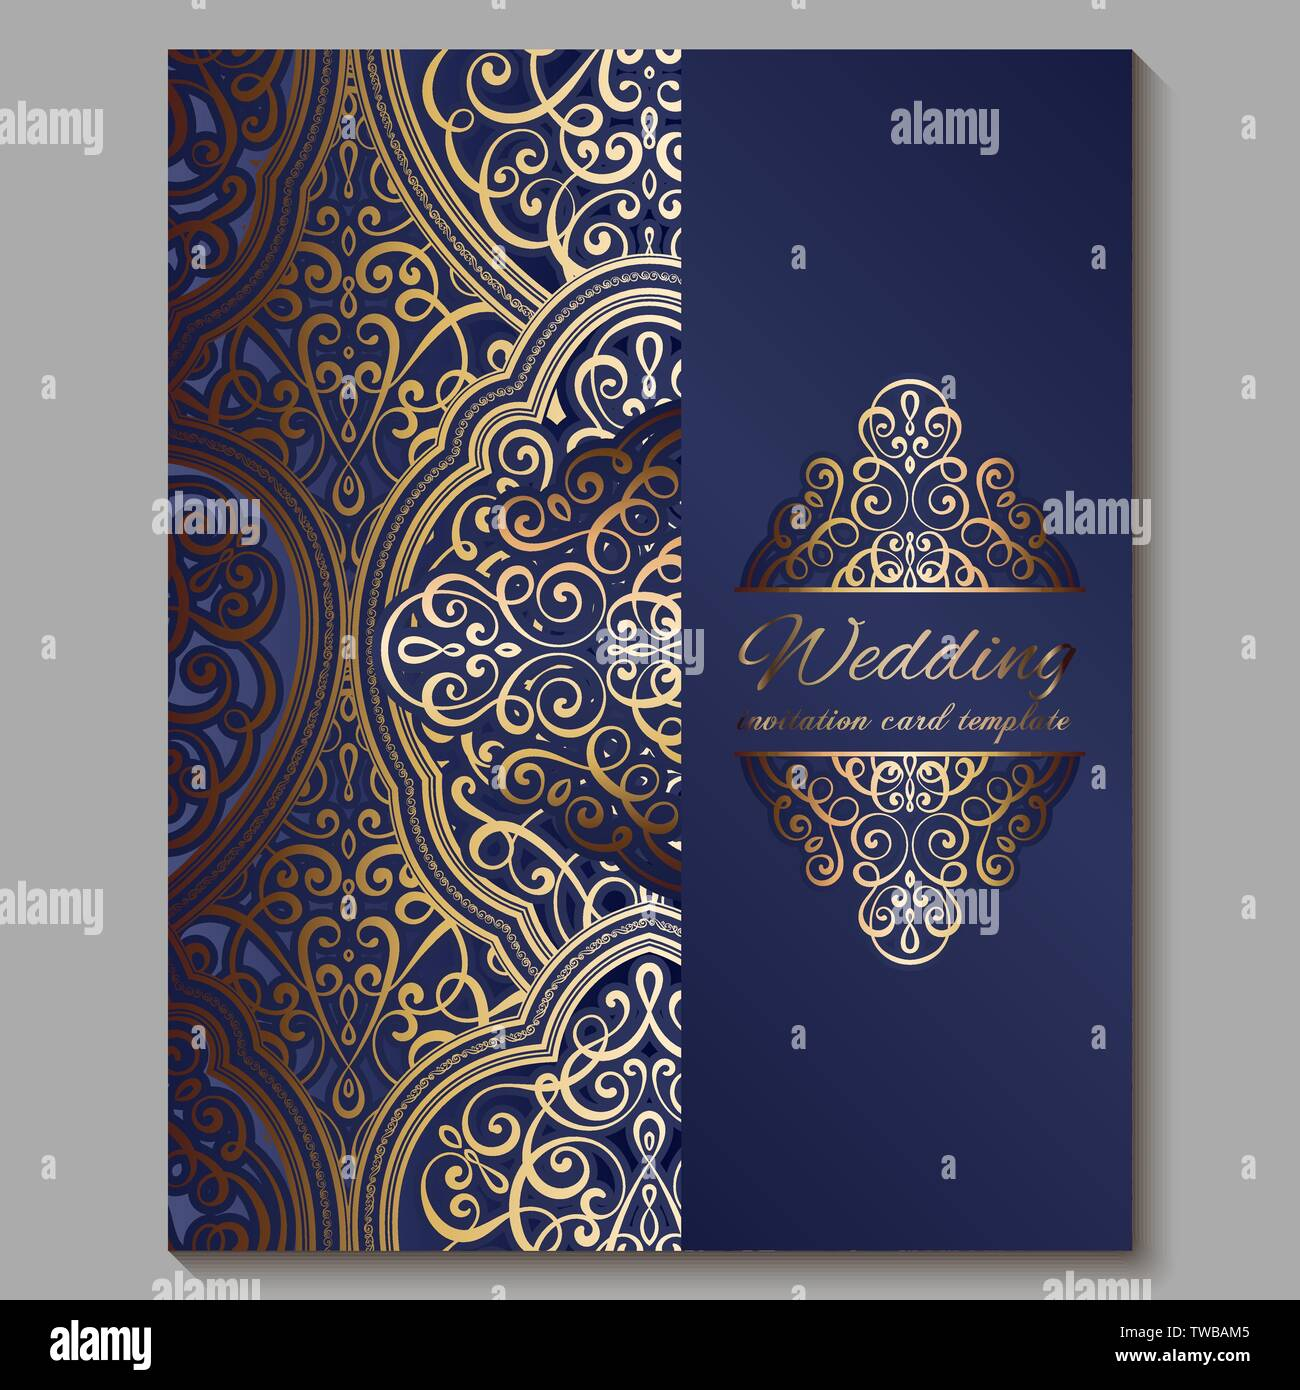 Wedding Invitation Card With Gold Shiny Eastern And Baroque Rich Foliage Royal Blue Ornate Islamic Background For Your Design Islam Arabic Indian Stock Vector Image Art Alamy